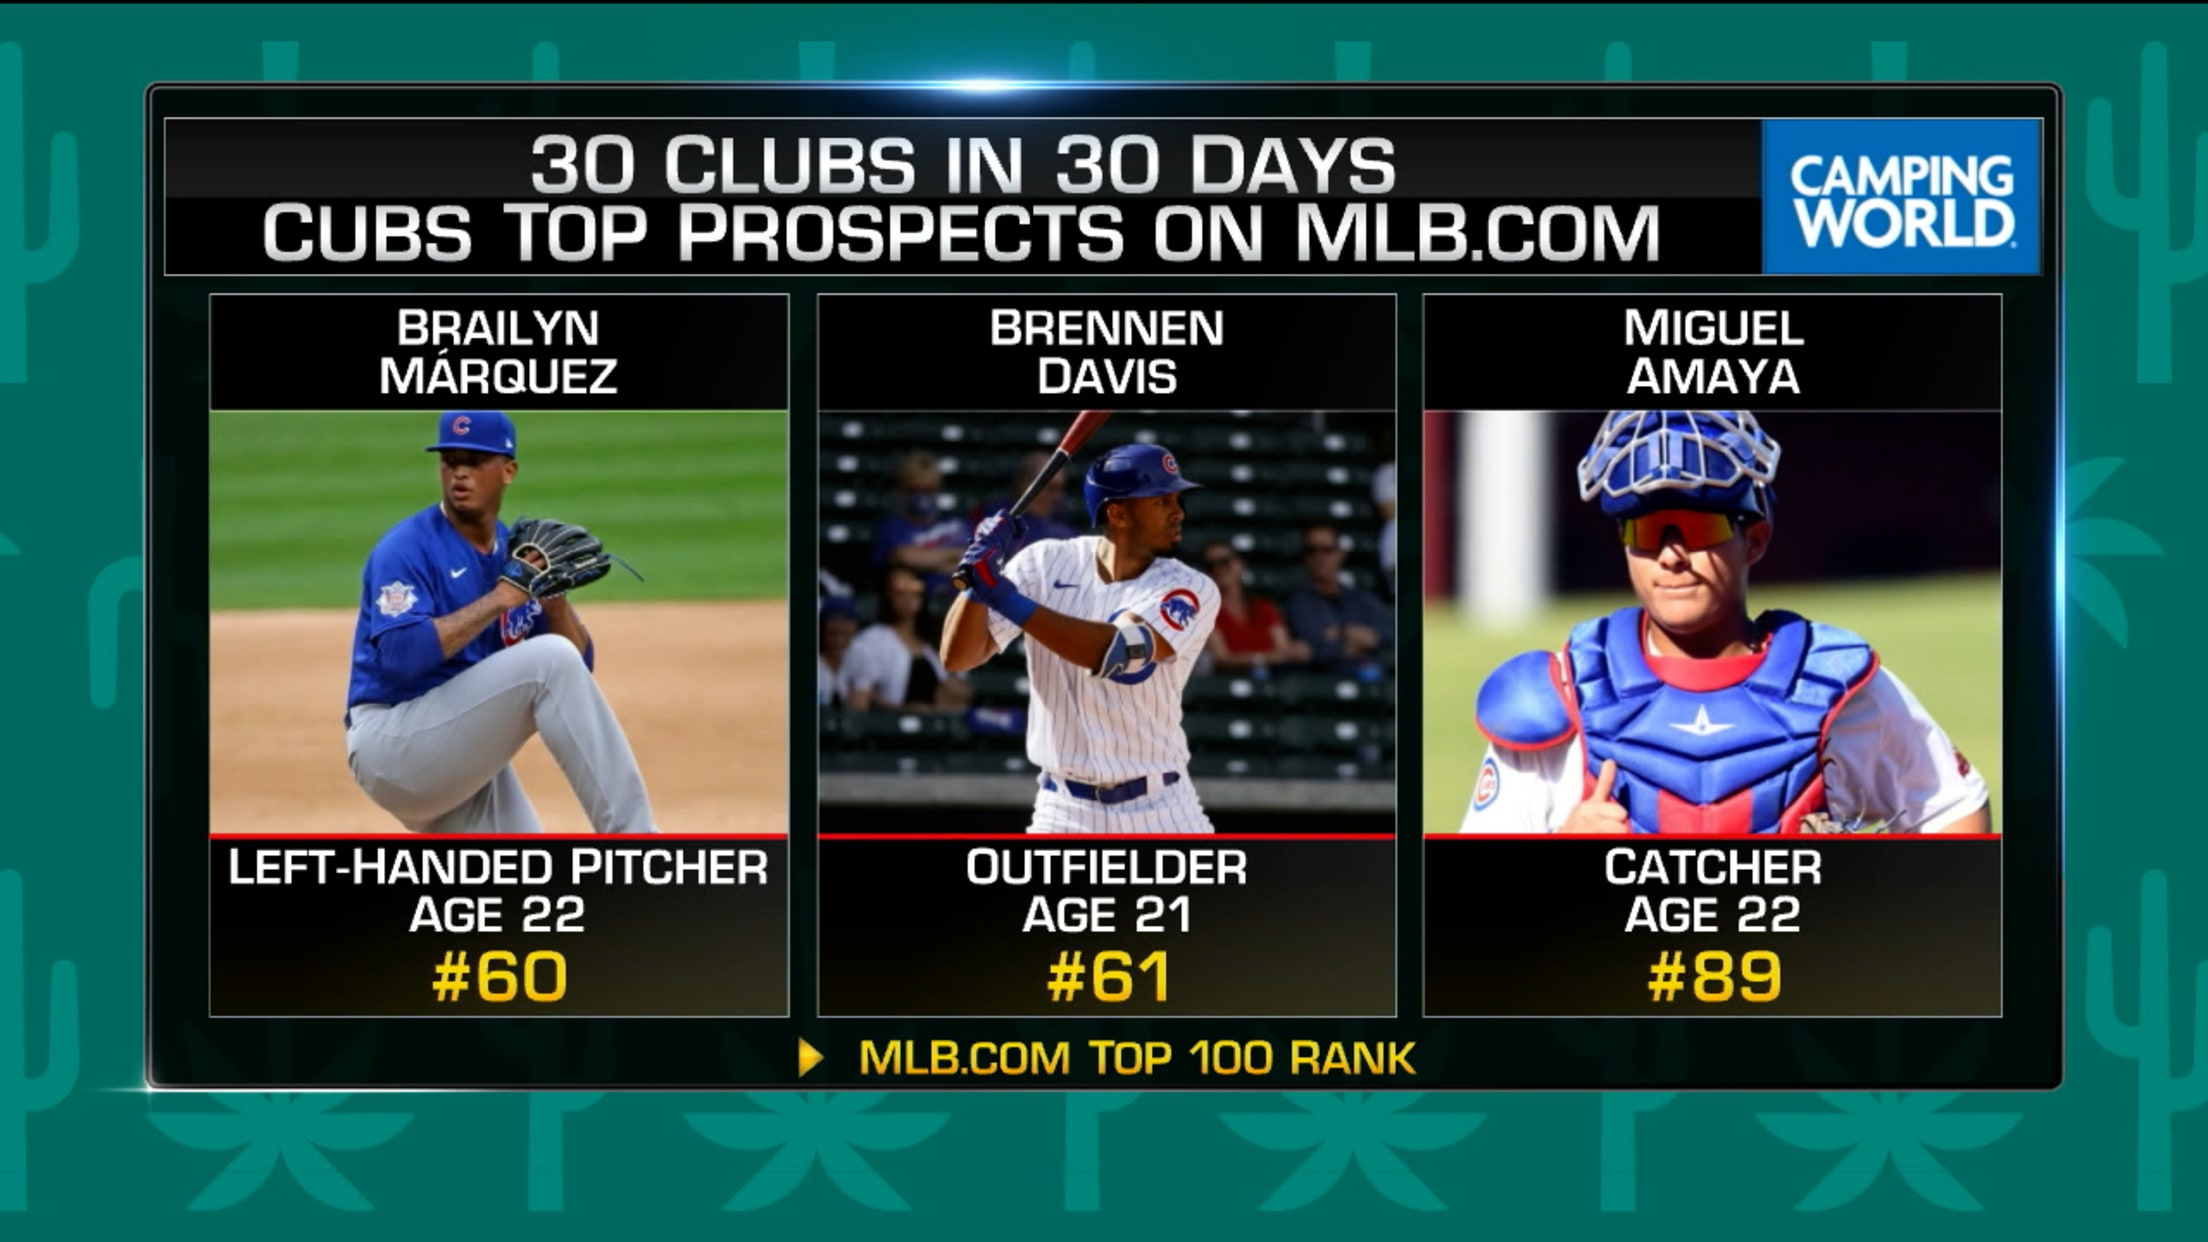 Mayo on Cubs' top prospects